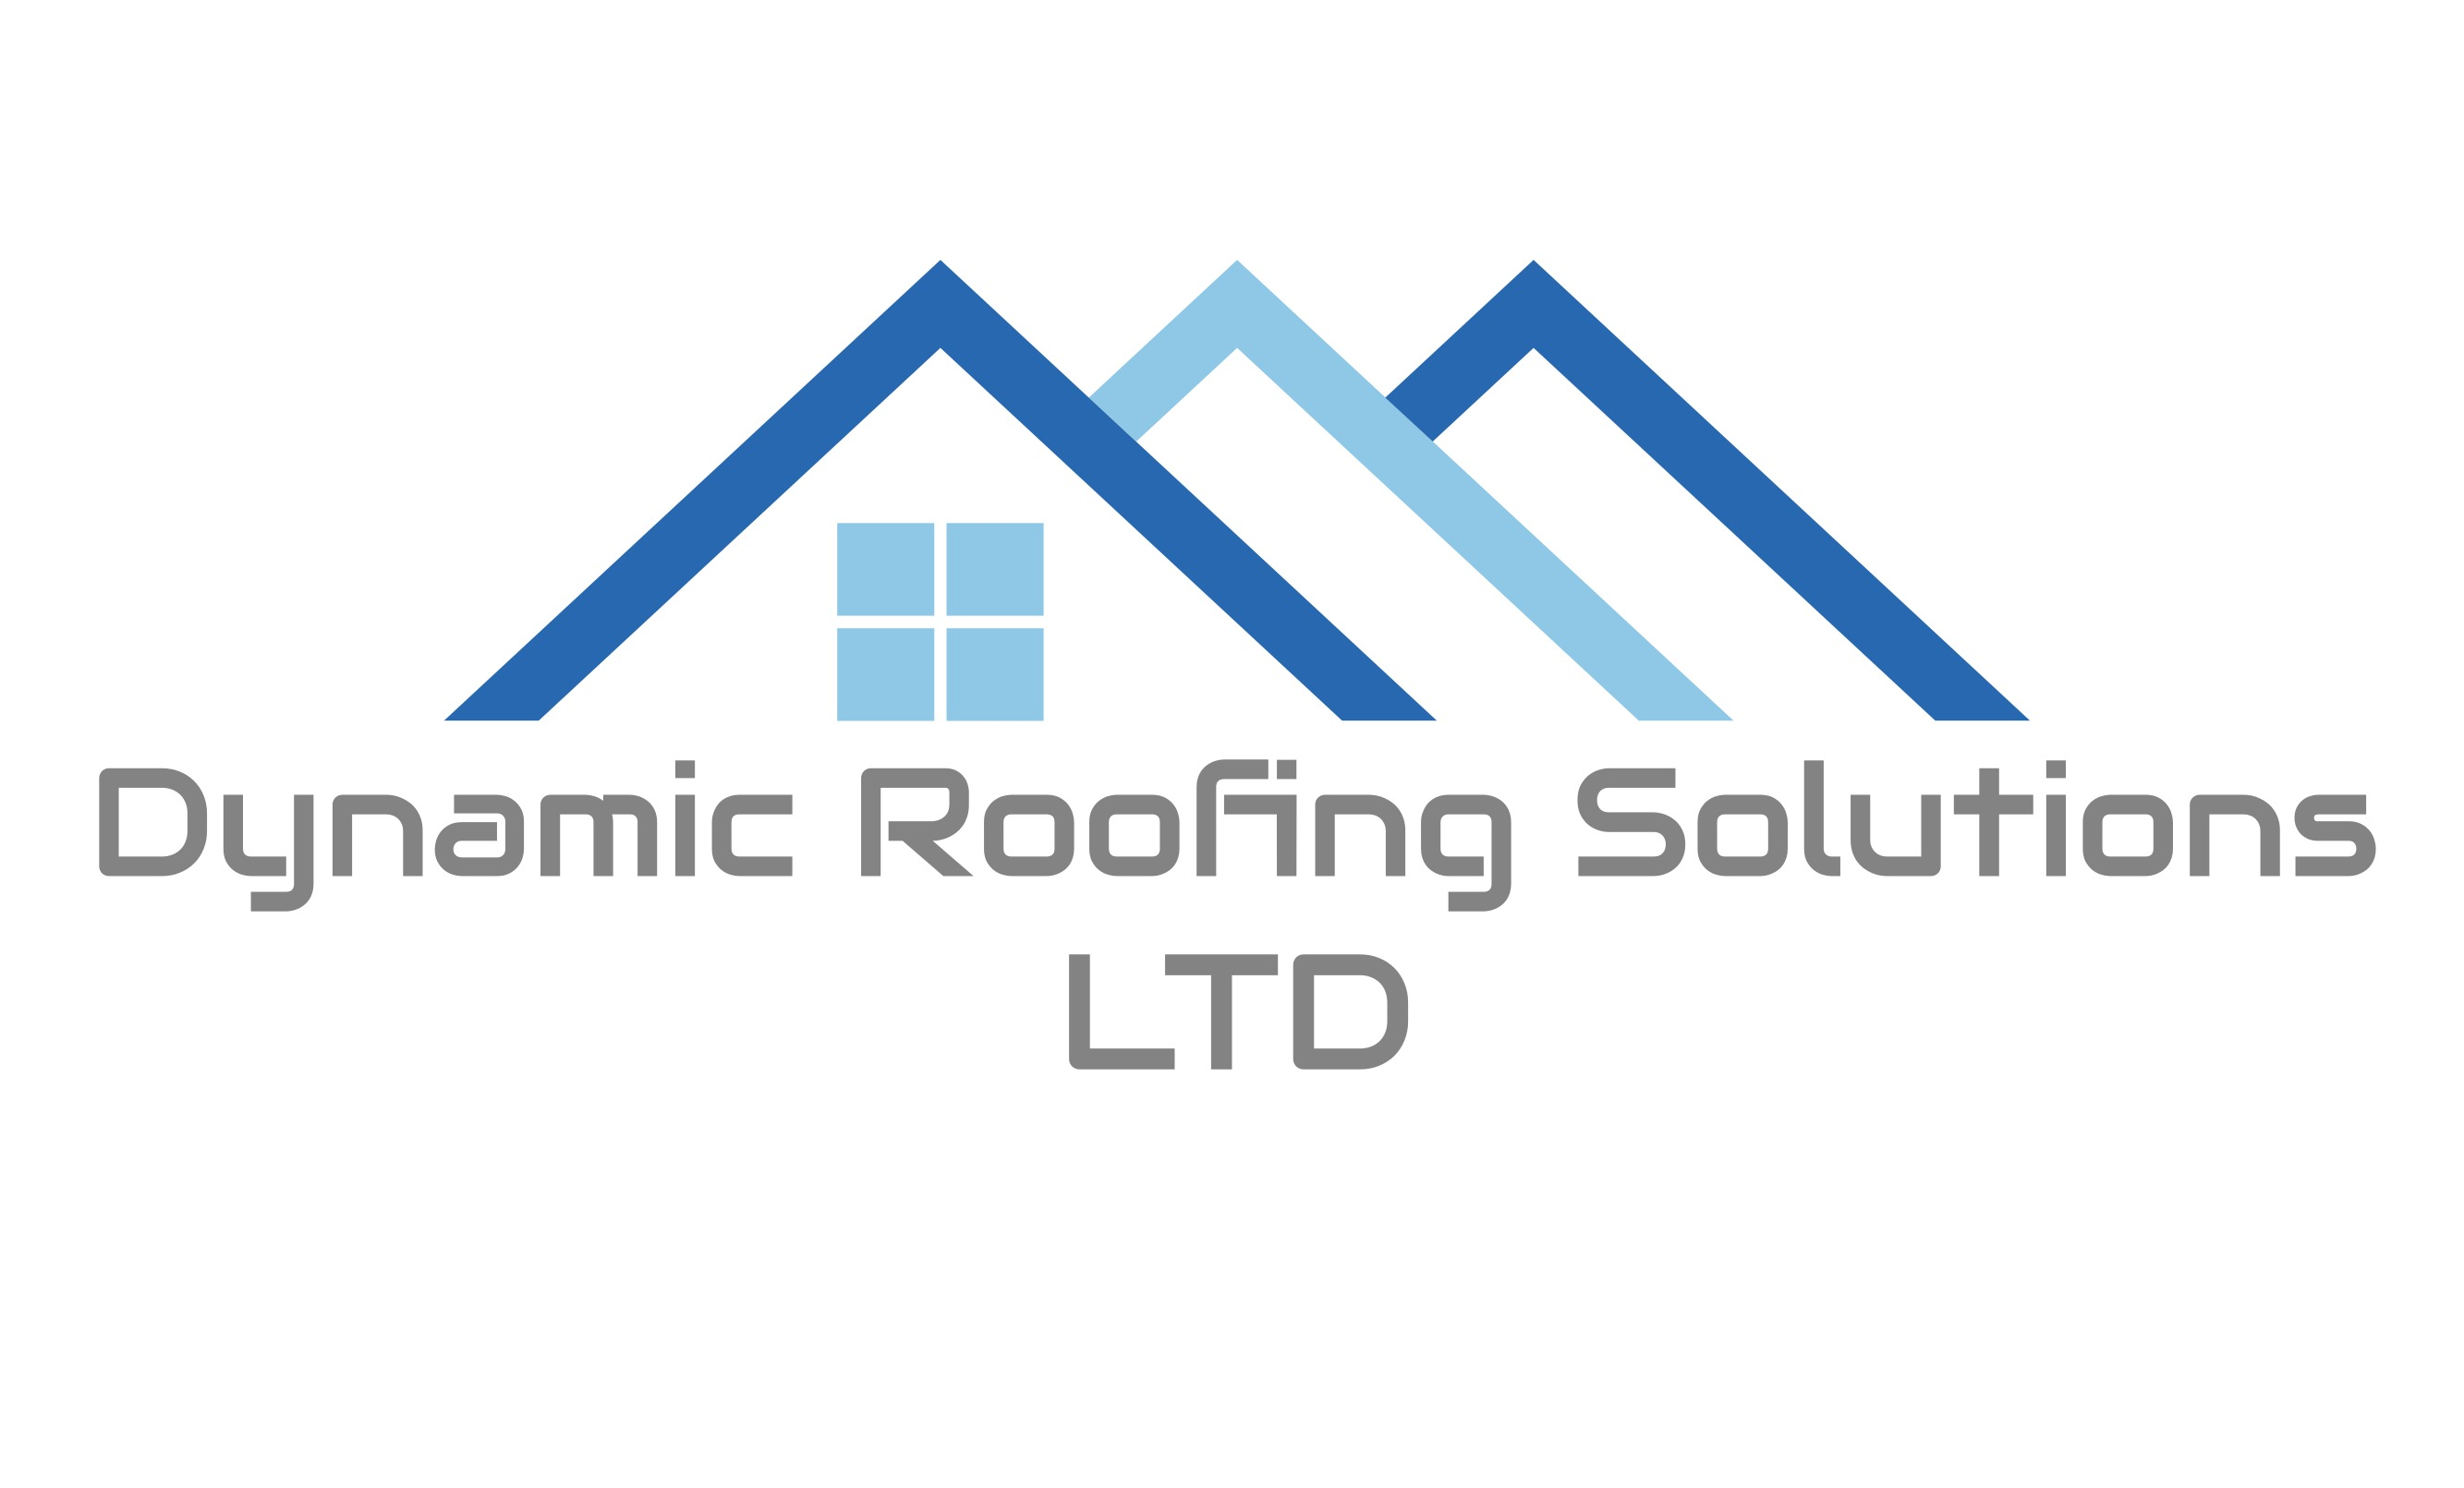 Dynamic Roofing Solutions Ltd Roofer Rochford Checkatrade